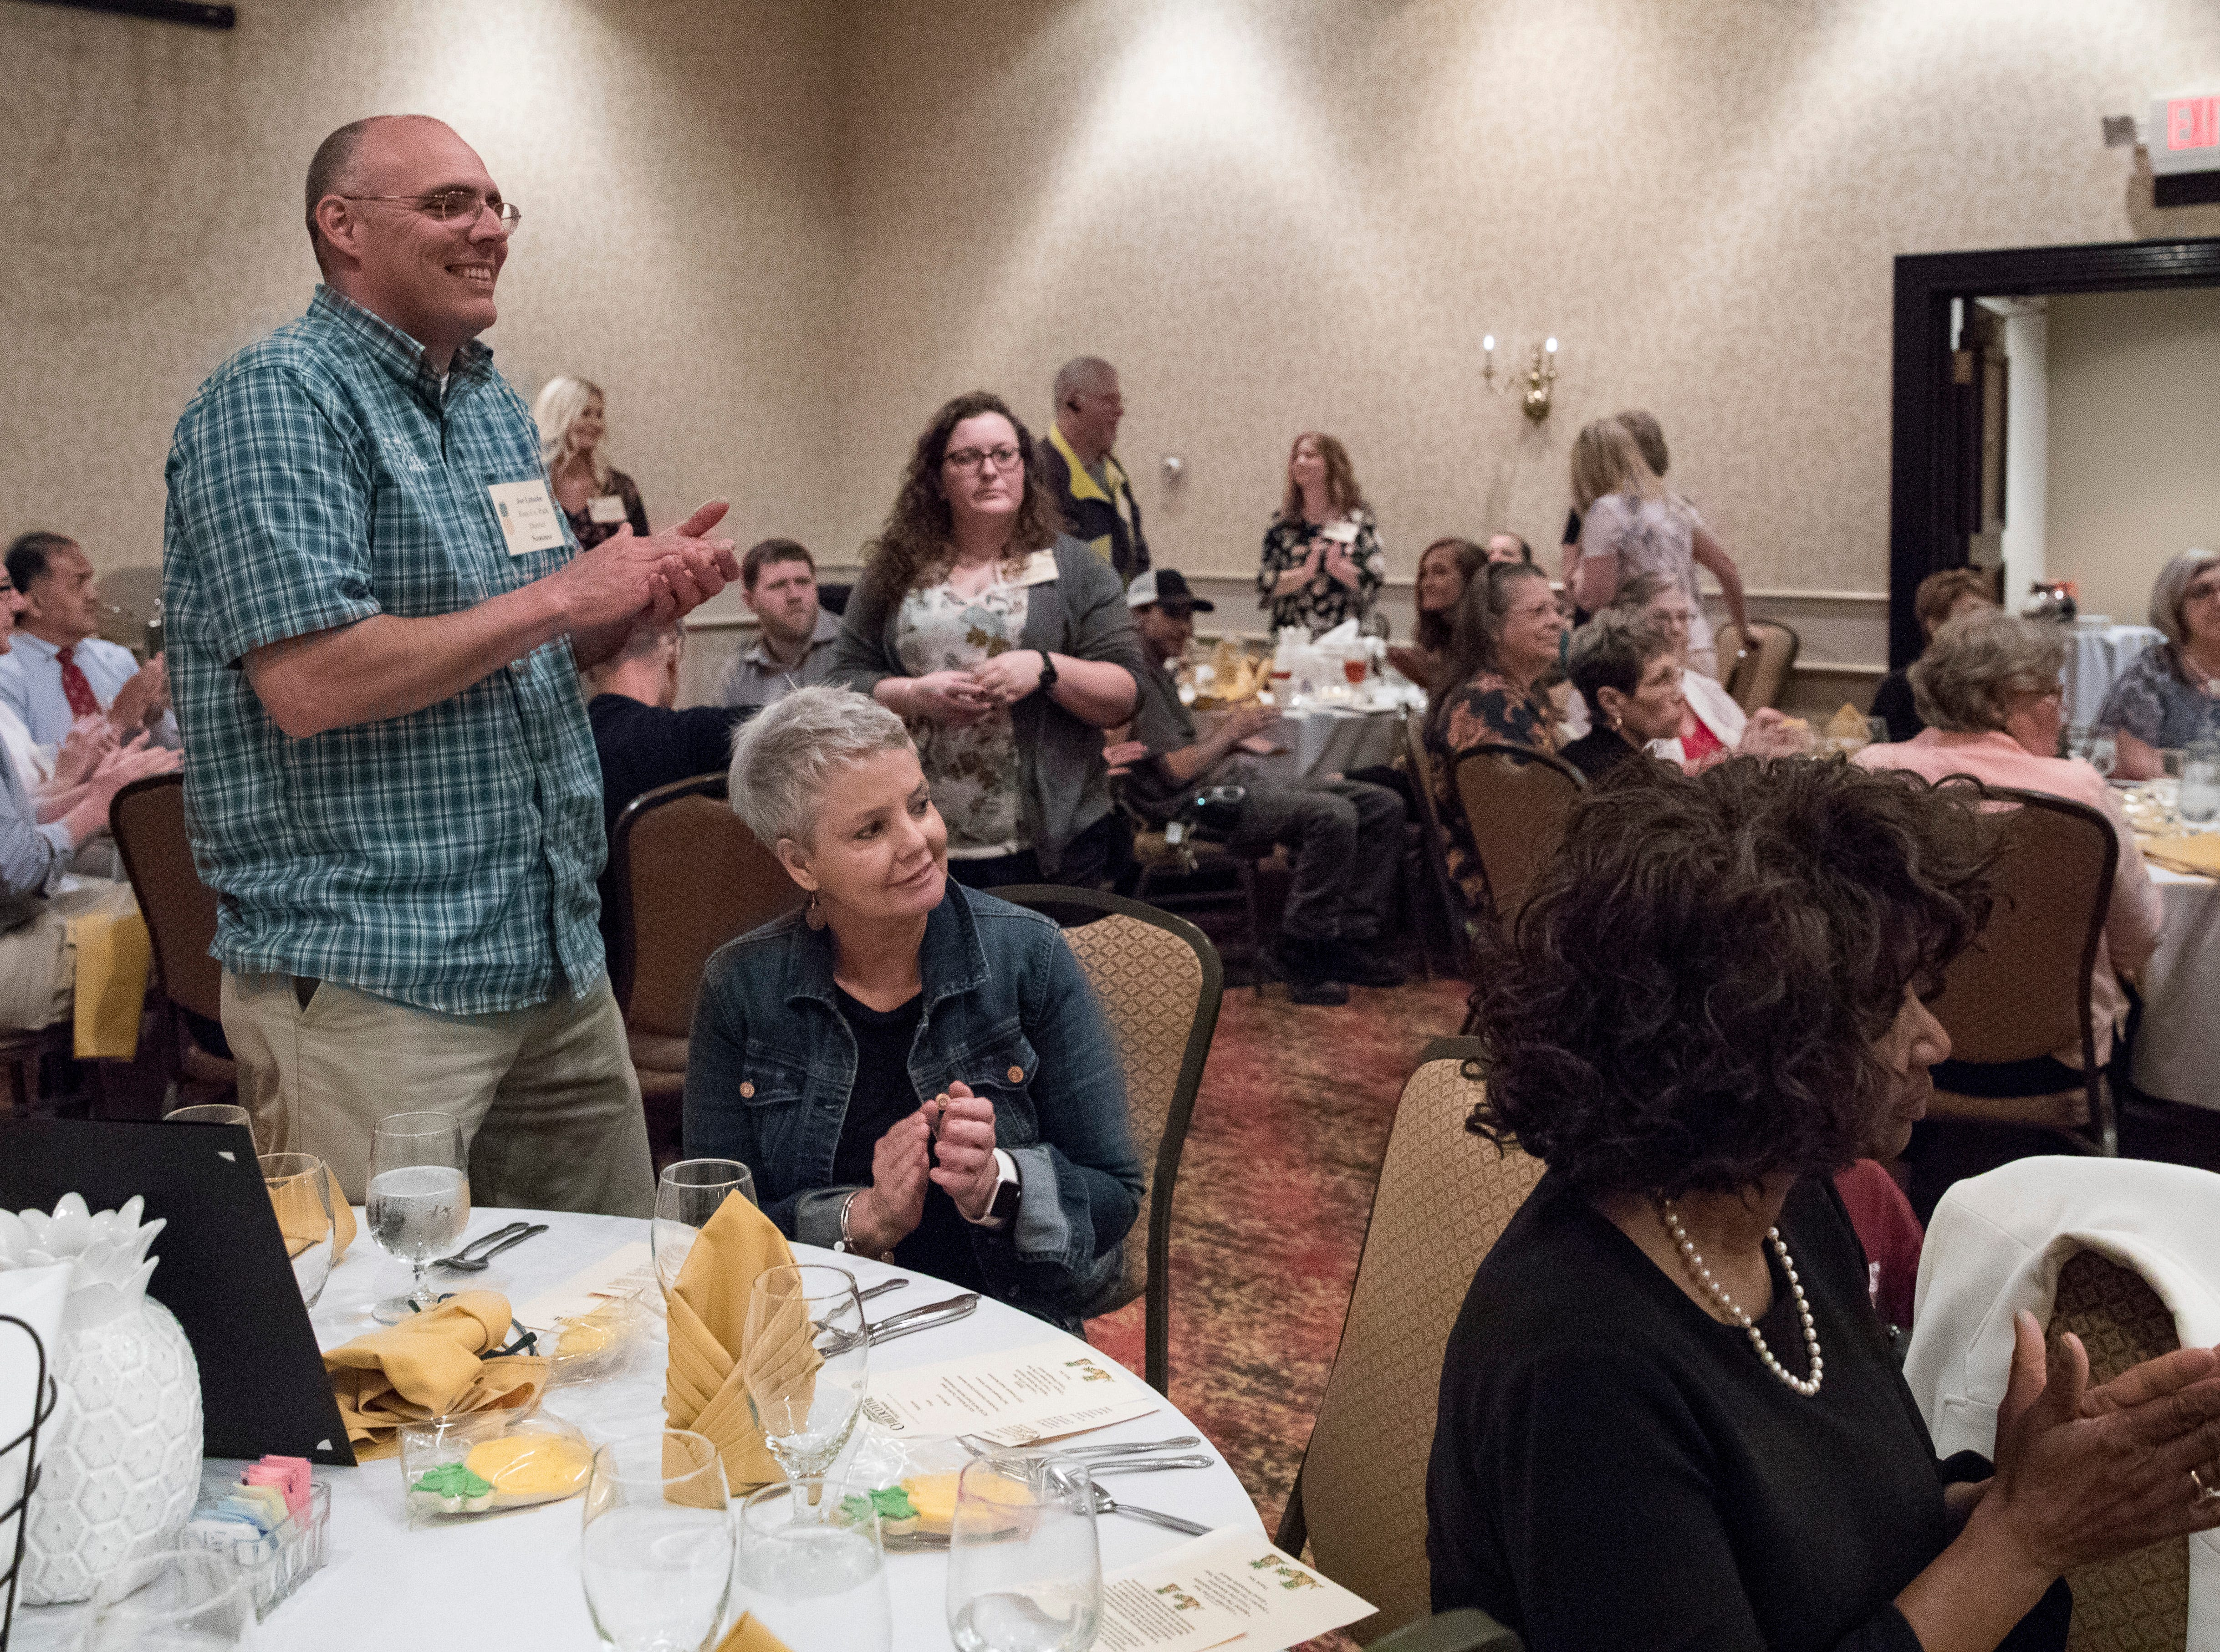 Numerous Pineapple Award nominees stood up to be congratulated at the Christopher Conference Center in Chillicothe, Ohio, on May 6, 2019.